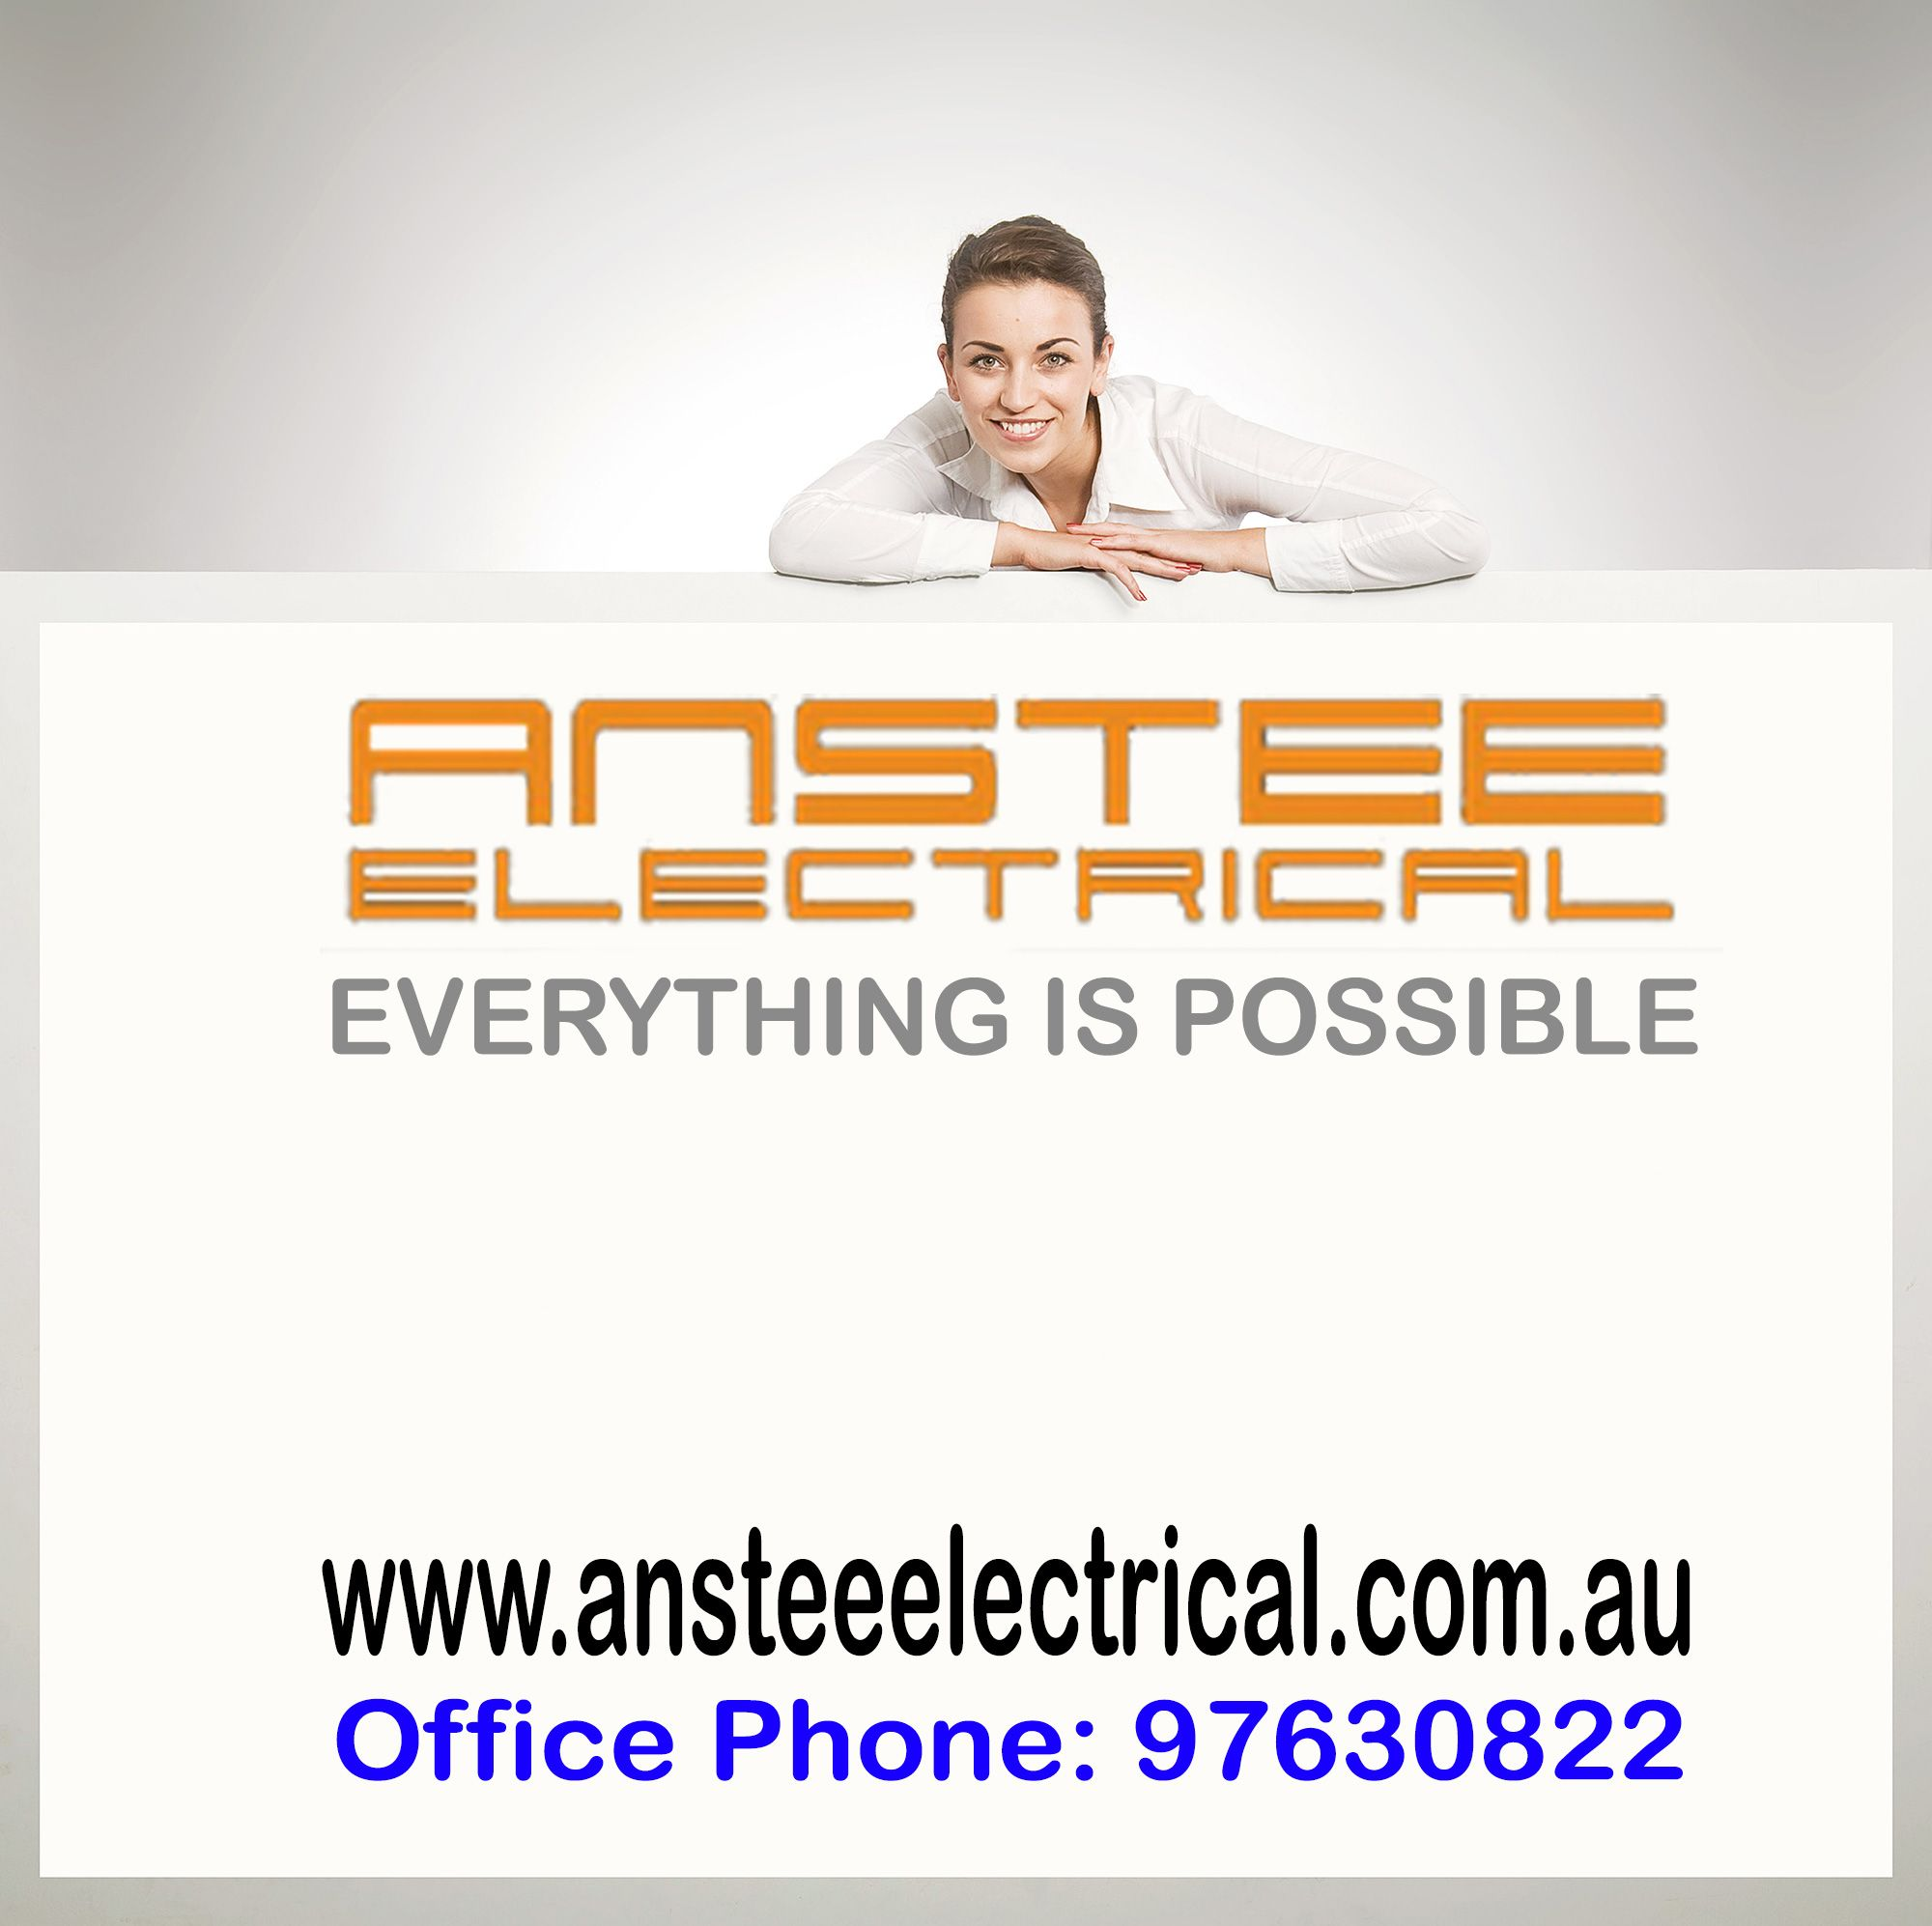 Anstee Electrical has been operating since 1963. For 50